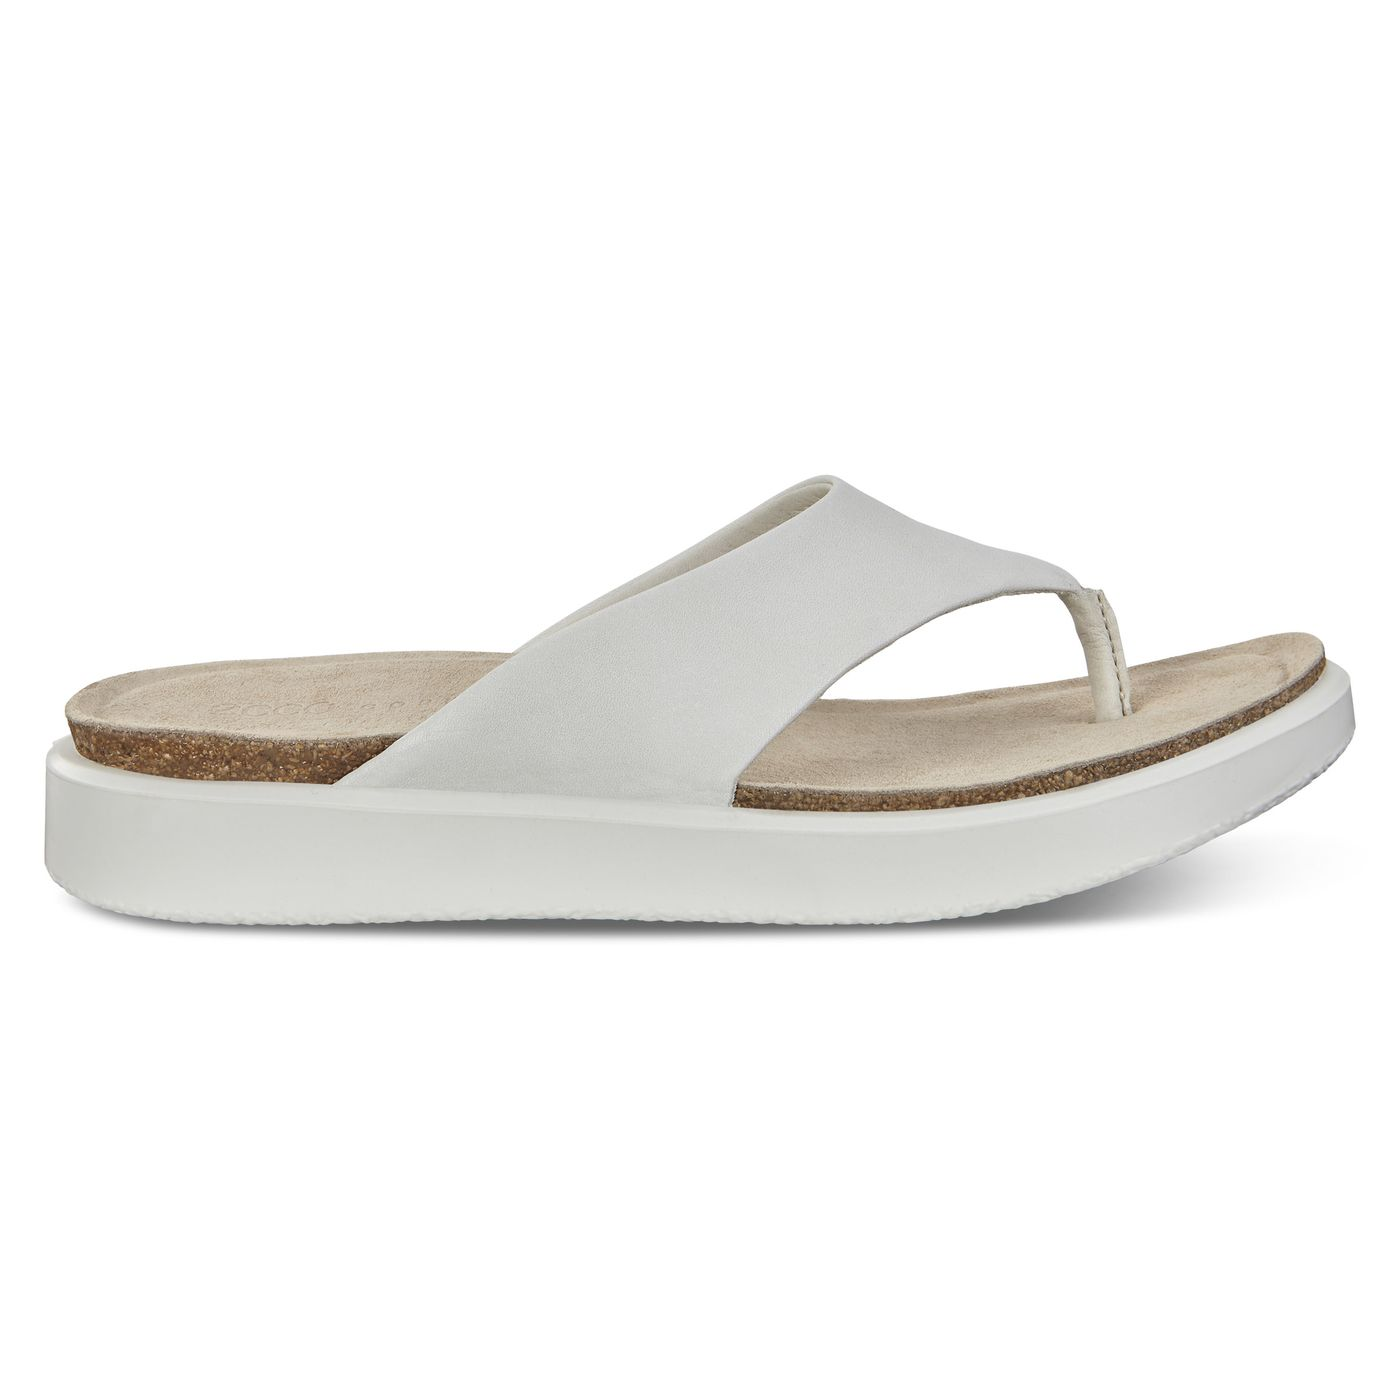 ab6e9be36e ECCO Women's Corksphere Sandal Thong | ECCO® Shoes | I want this ...